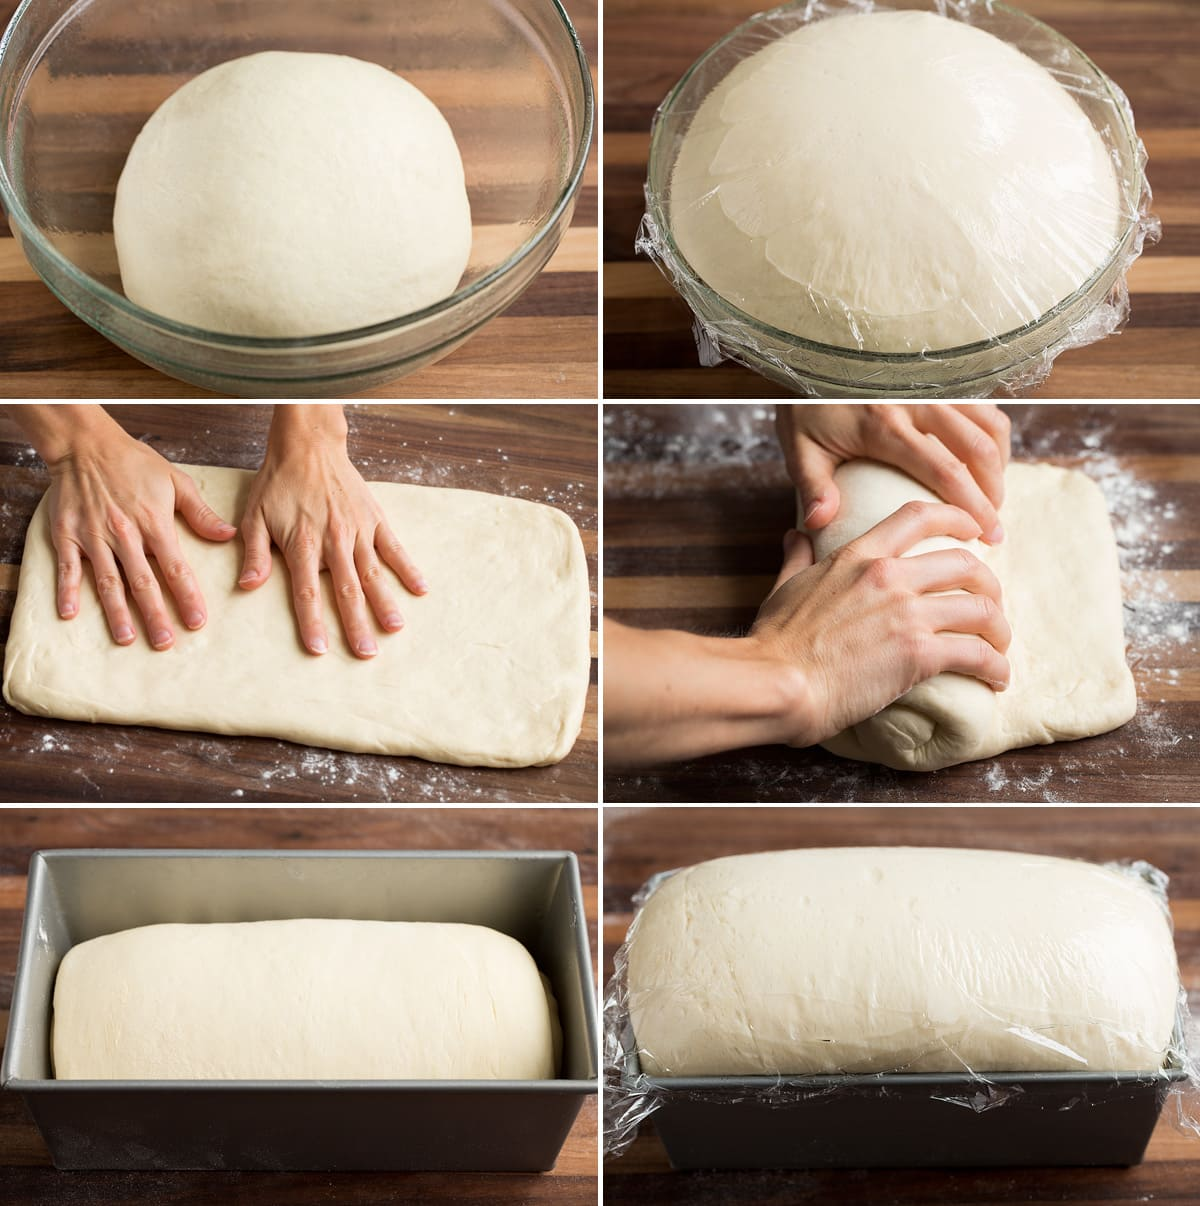 Image including a collage of 6 images showing bread dough before and after rising, patting into a rectangle, rolling dough up, then dough before and after rising in a bread pan.